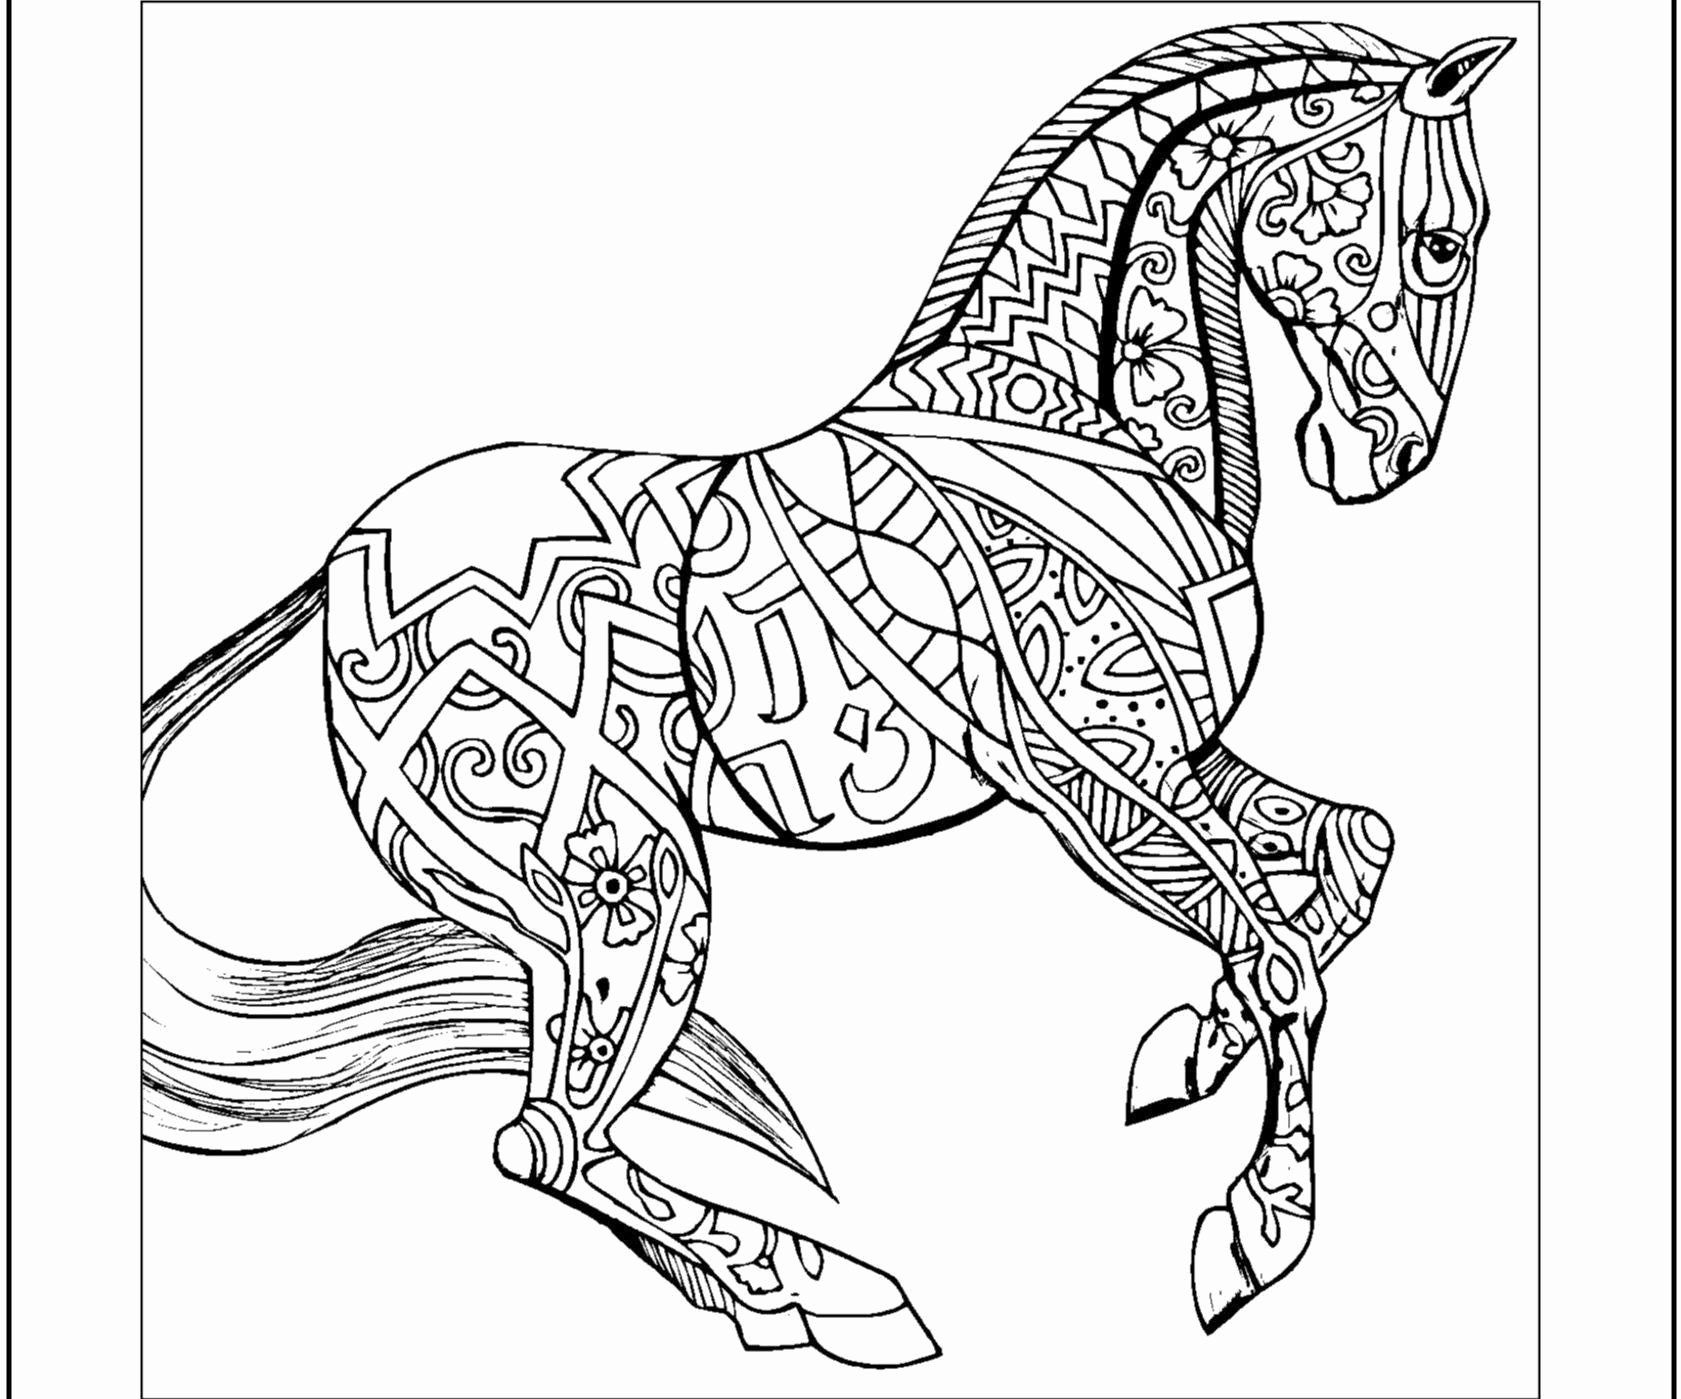 horse pics to color 9 horse coloring pages free pdf document download color to horse pics